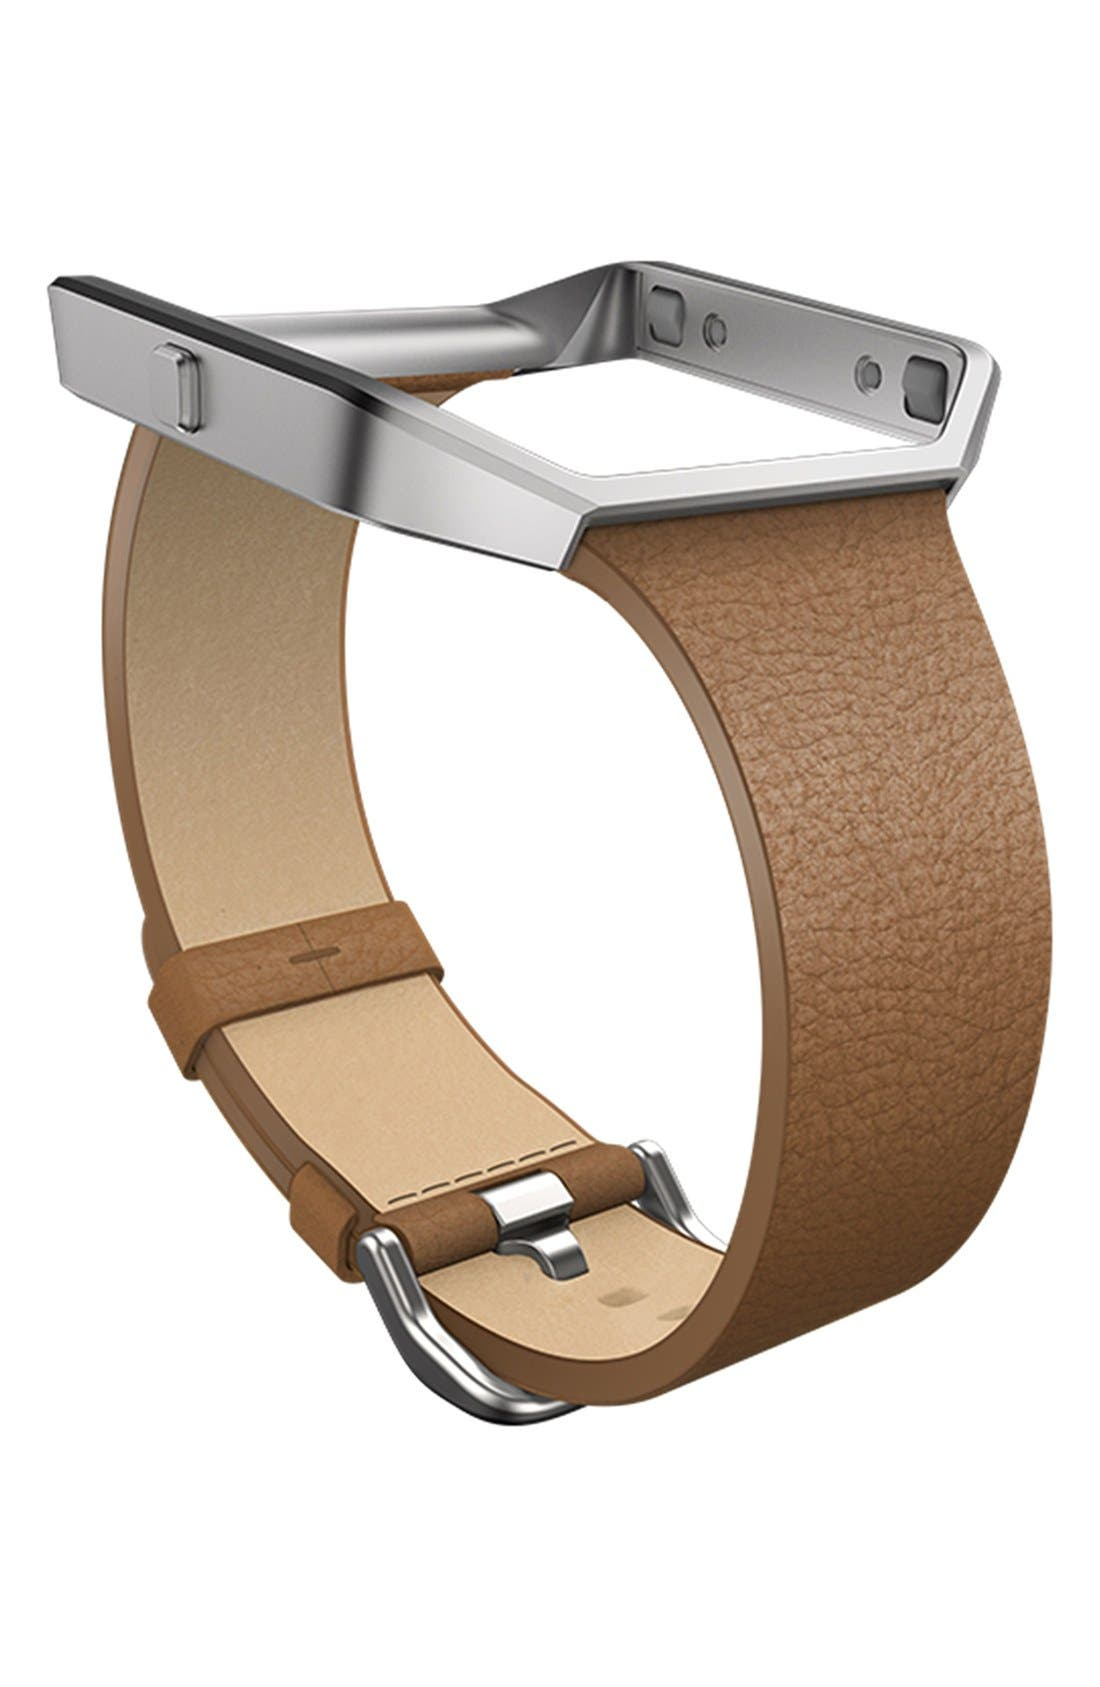 'Blaze' Slim Leather Accessory Band & Frame,                             Main thumbnail 1, color,                             Camel